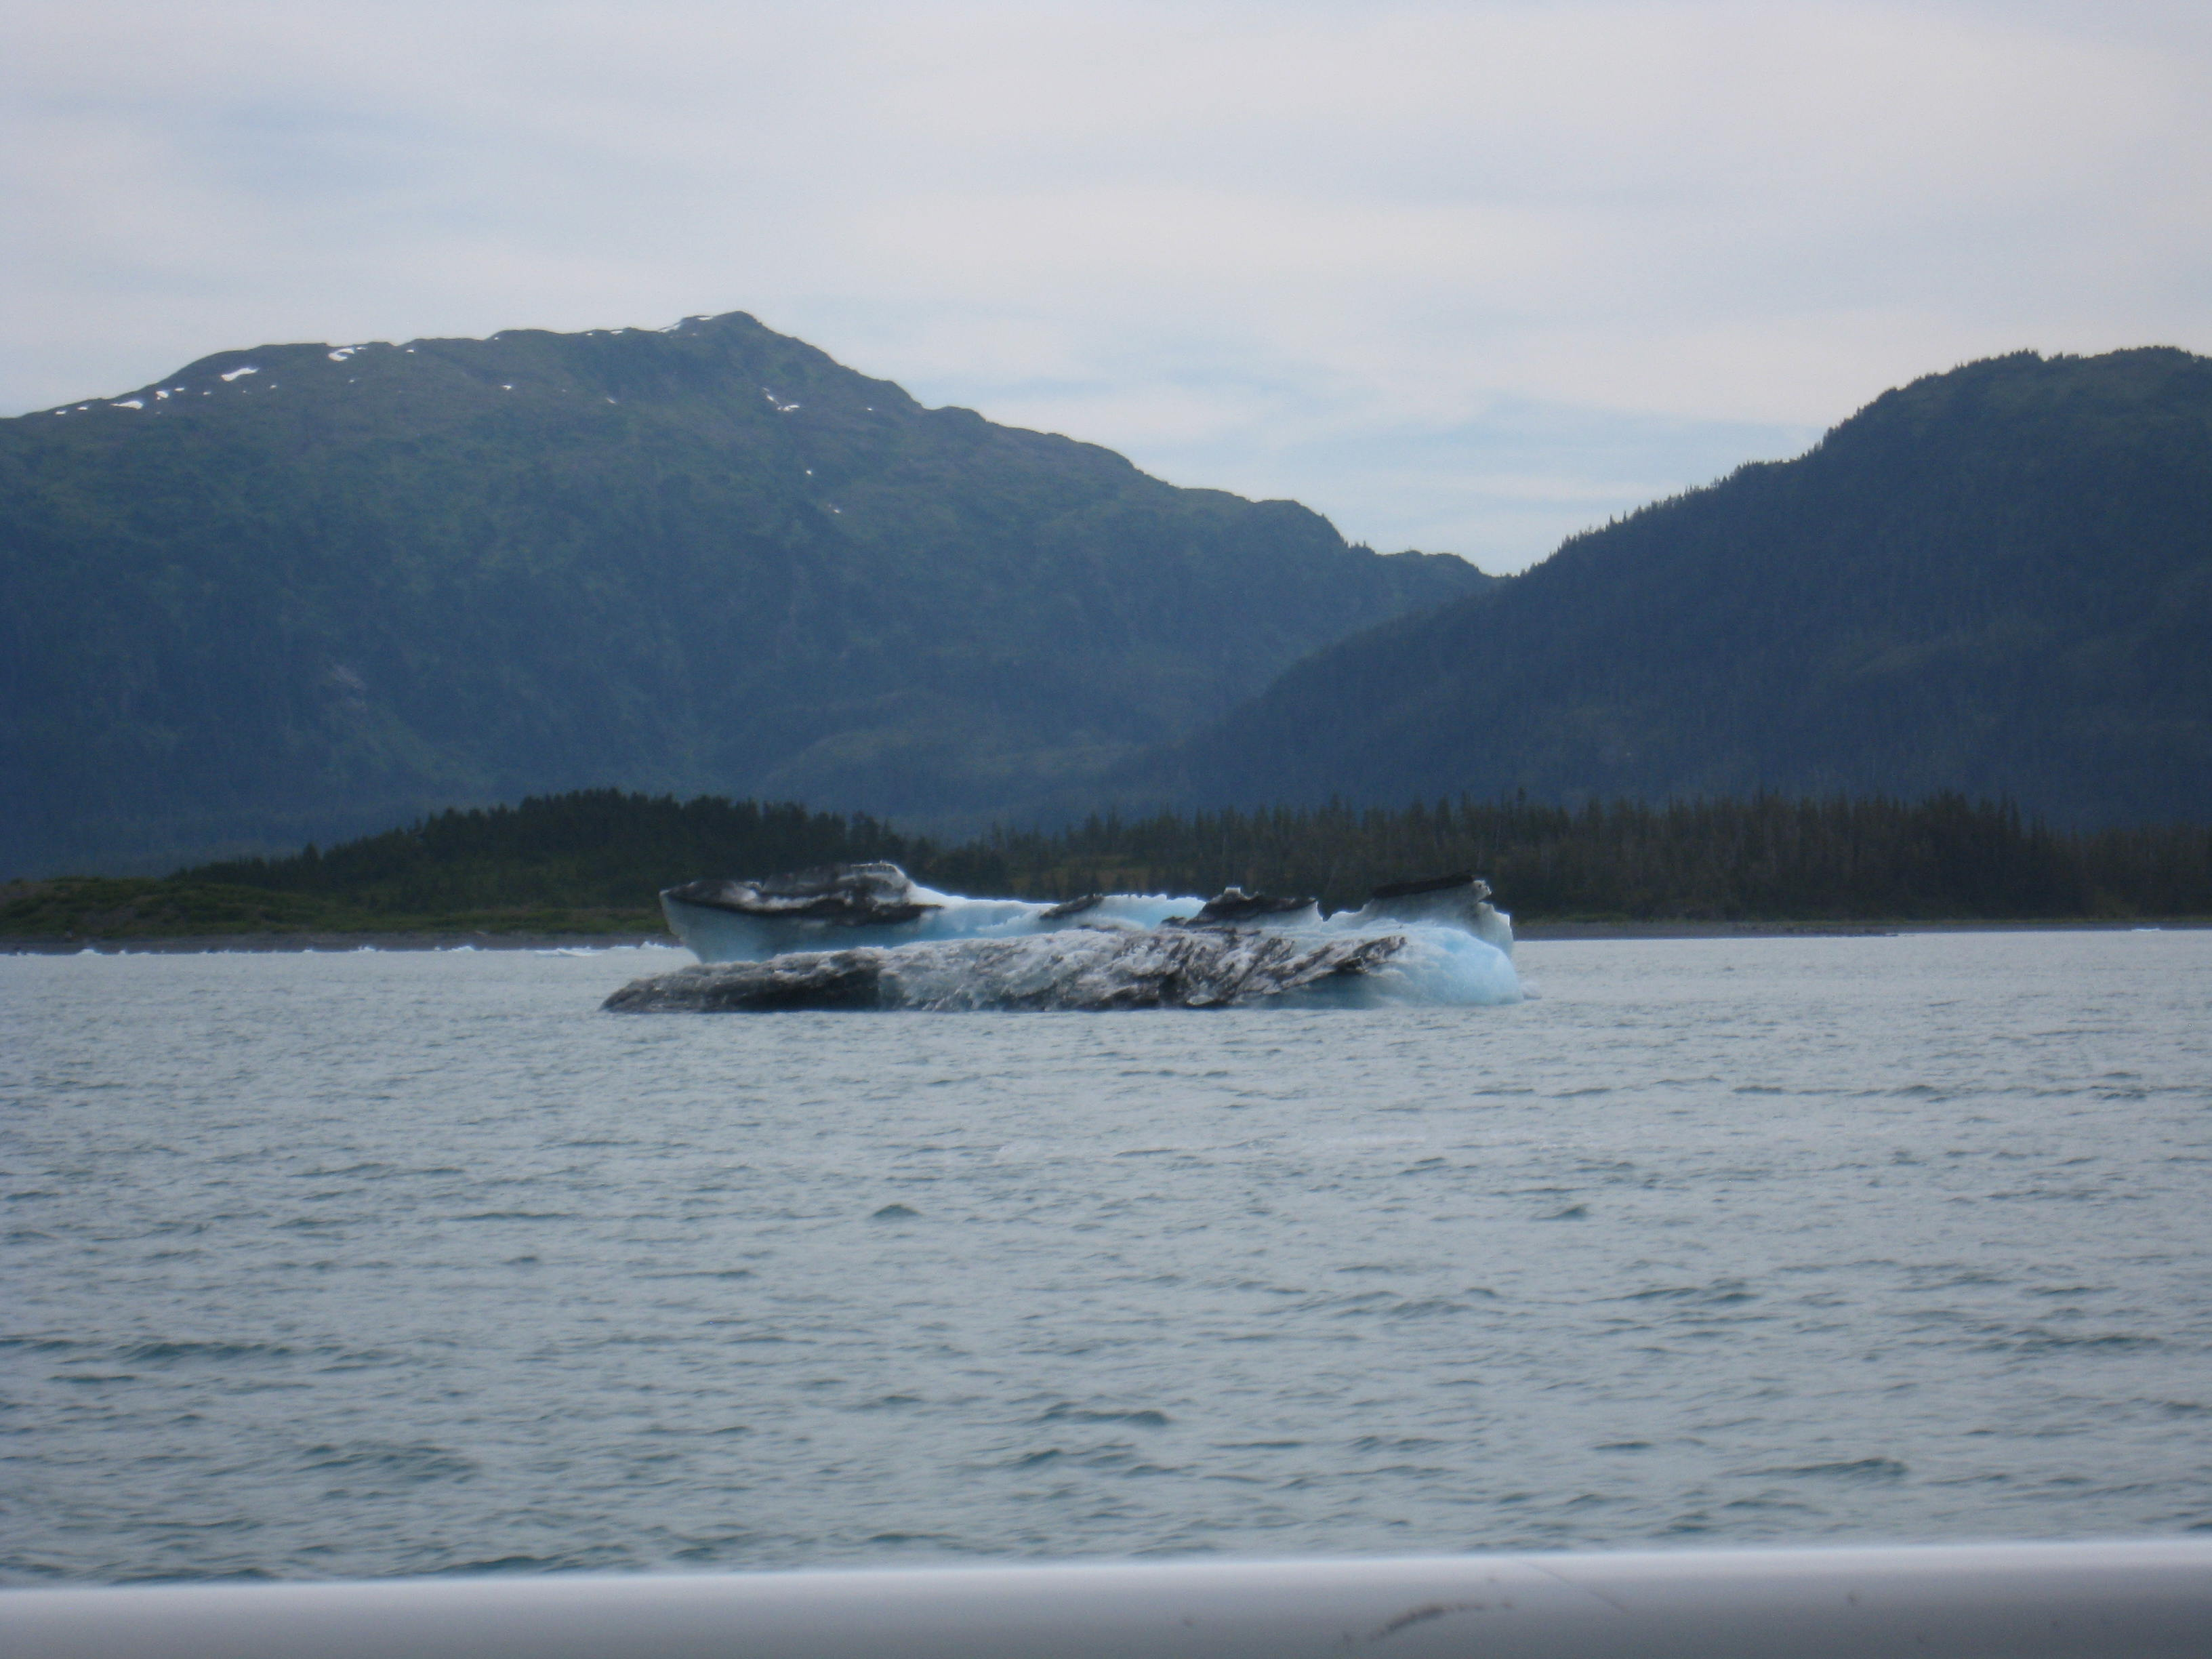 Spectacular Alaska - Whale Watching